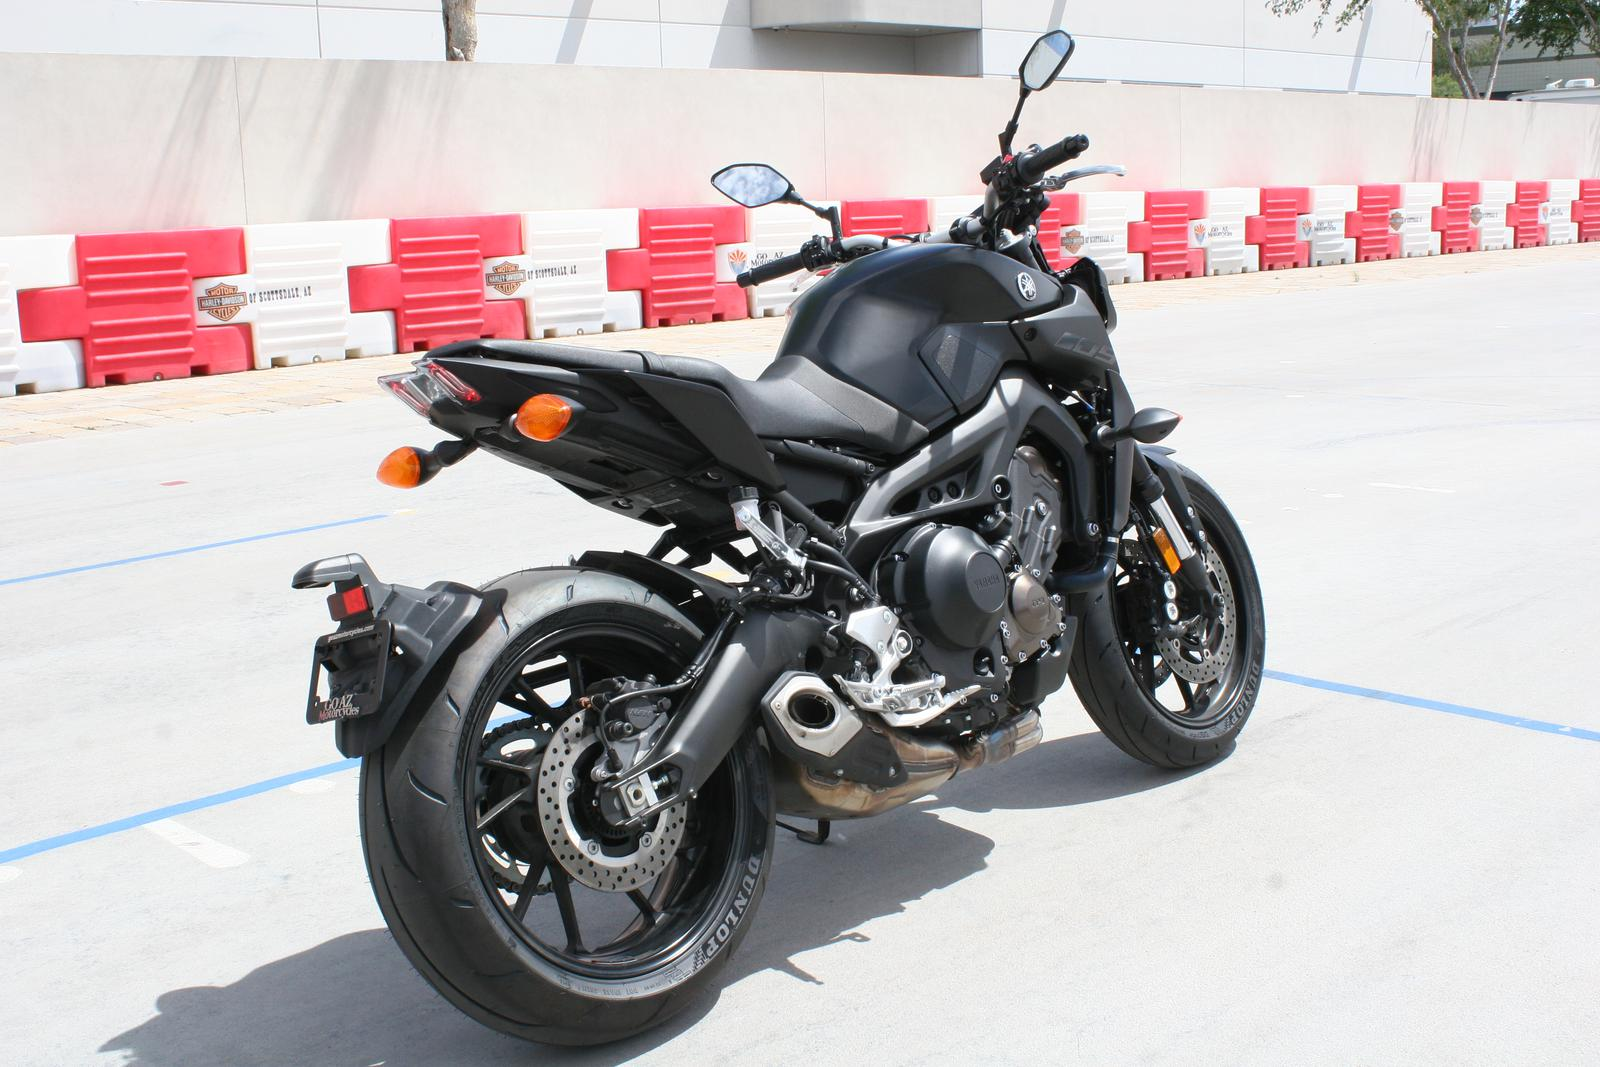 2018 Yamaha MT-09 for sale in Scottsdale, AZ | GO AZ